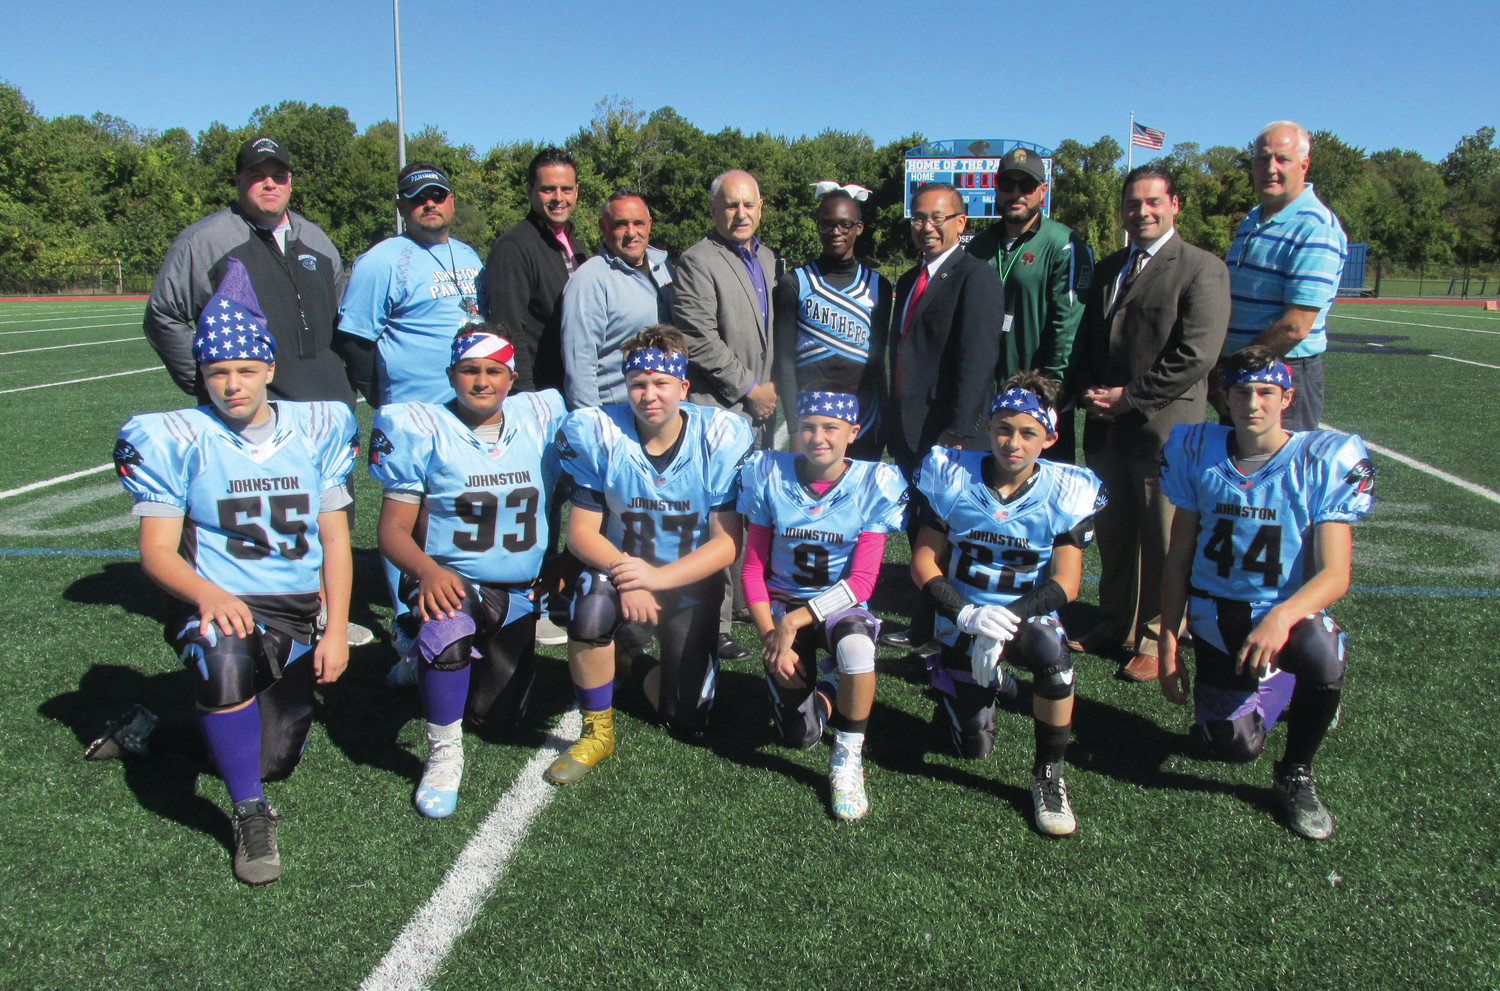 MEMORIAL MOMENT: Among those Johnston Youth Football League and CLCF officials who took part in Sunday's special tribute and fundraising effort that will benefit the Jaxon Marocco Foundation, are kneeling in front from left: Nicholas Keller, Alexander Morin, Michael Laflamme, Dante Iafrate, Micheal Salzillo and Nicholas Baccala. Top row: Matt Clements, Phil Morin, Robert Russo, Gary Salzillo, Mayor Joseph Polisena, Taylor Powell, Mayor Allan Fung, Bryan Stetson, Robert Nardolillo and David Cournoyer.